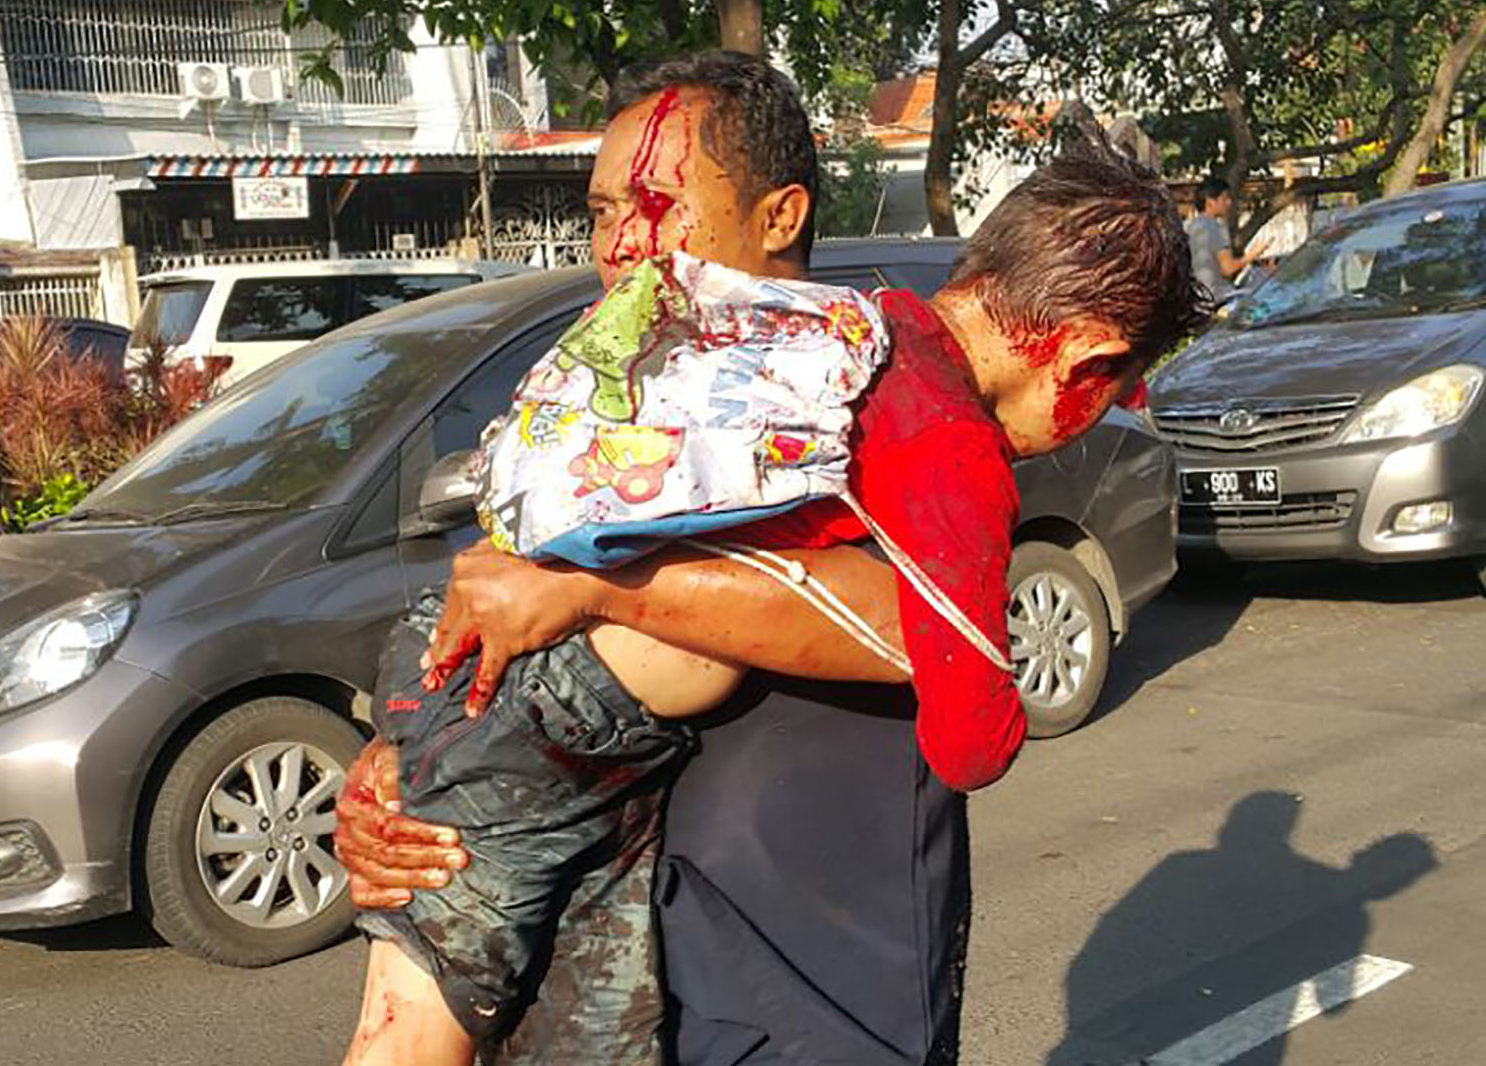 A man carries an injured child away from the scene of a suicide bombing at a church in Surabaya, Indonesia on May 13, 2018. PHOTO: TheDCNF